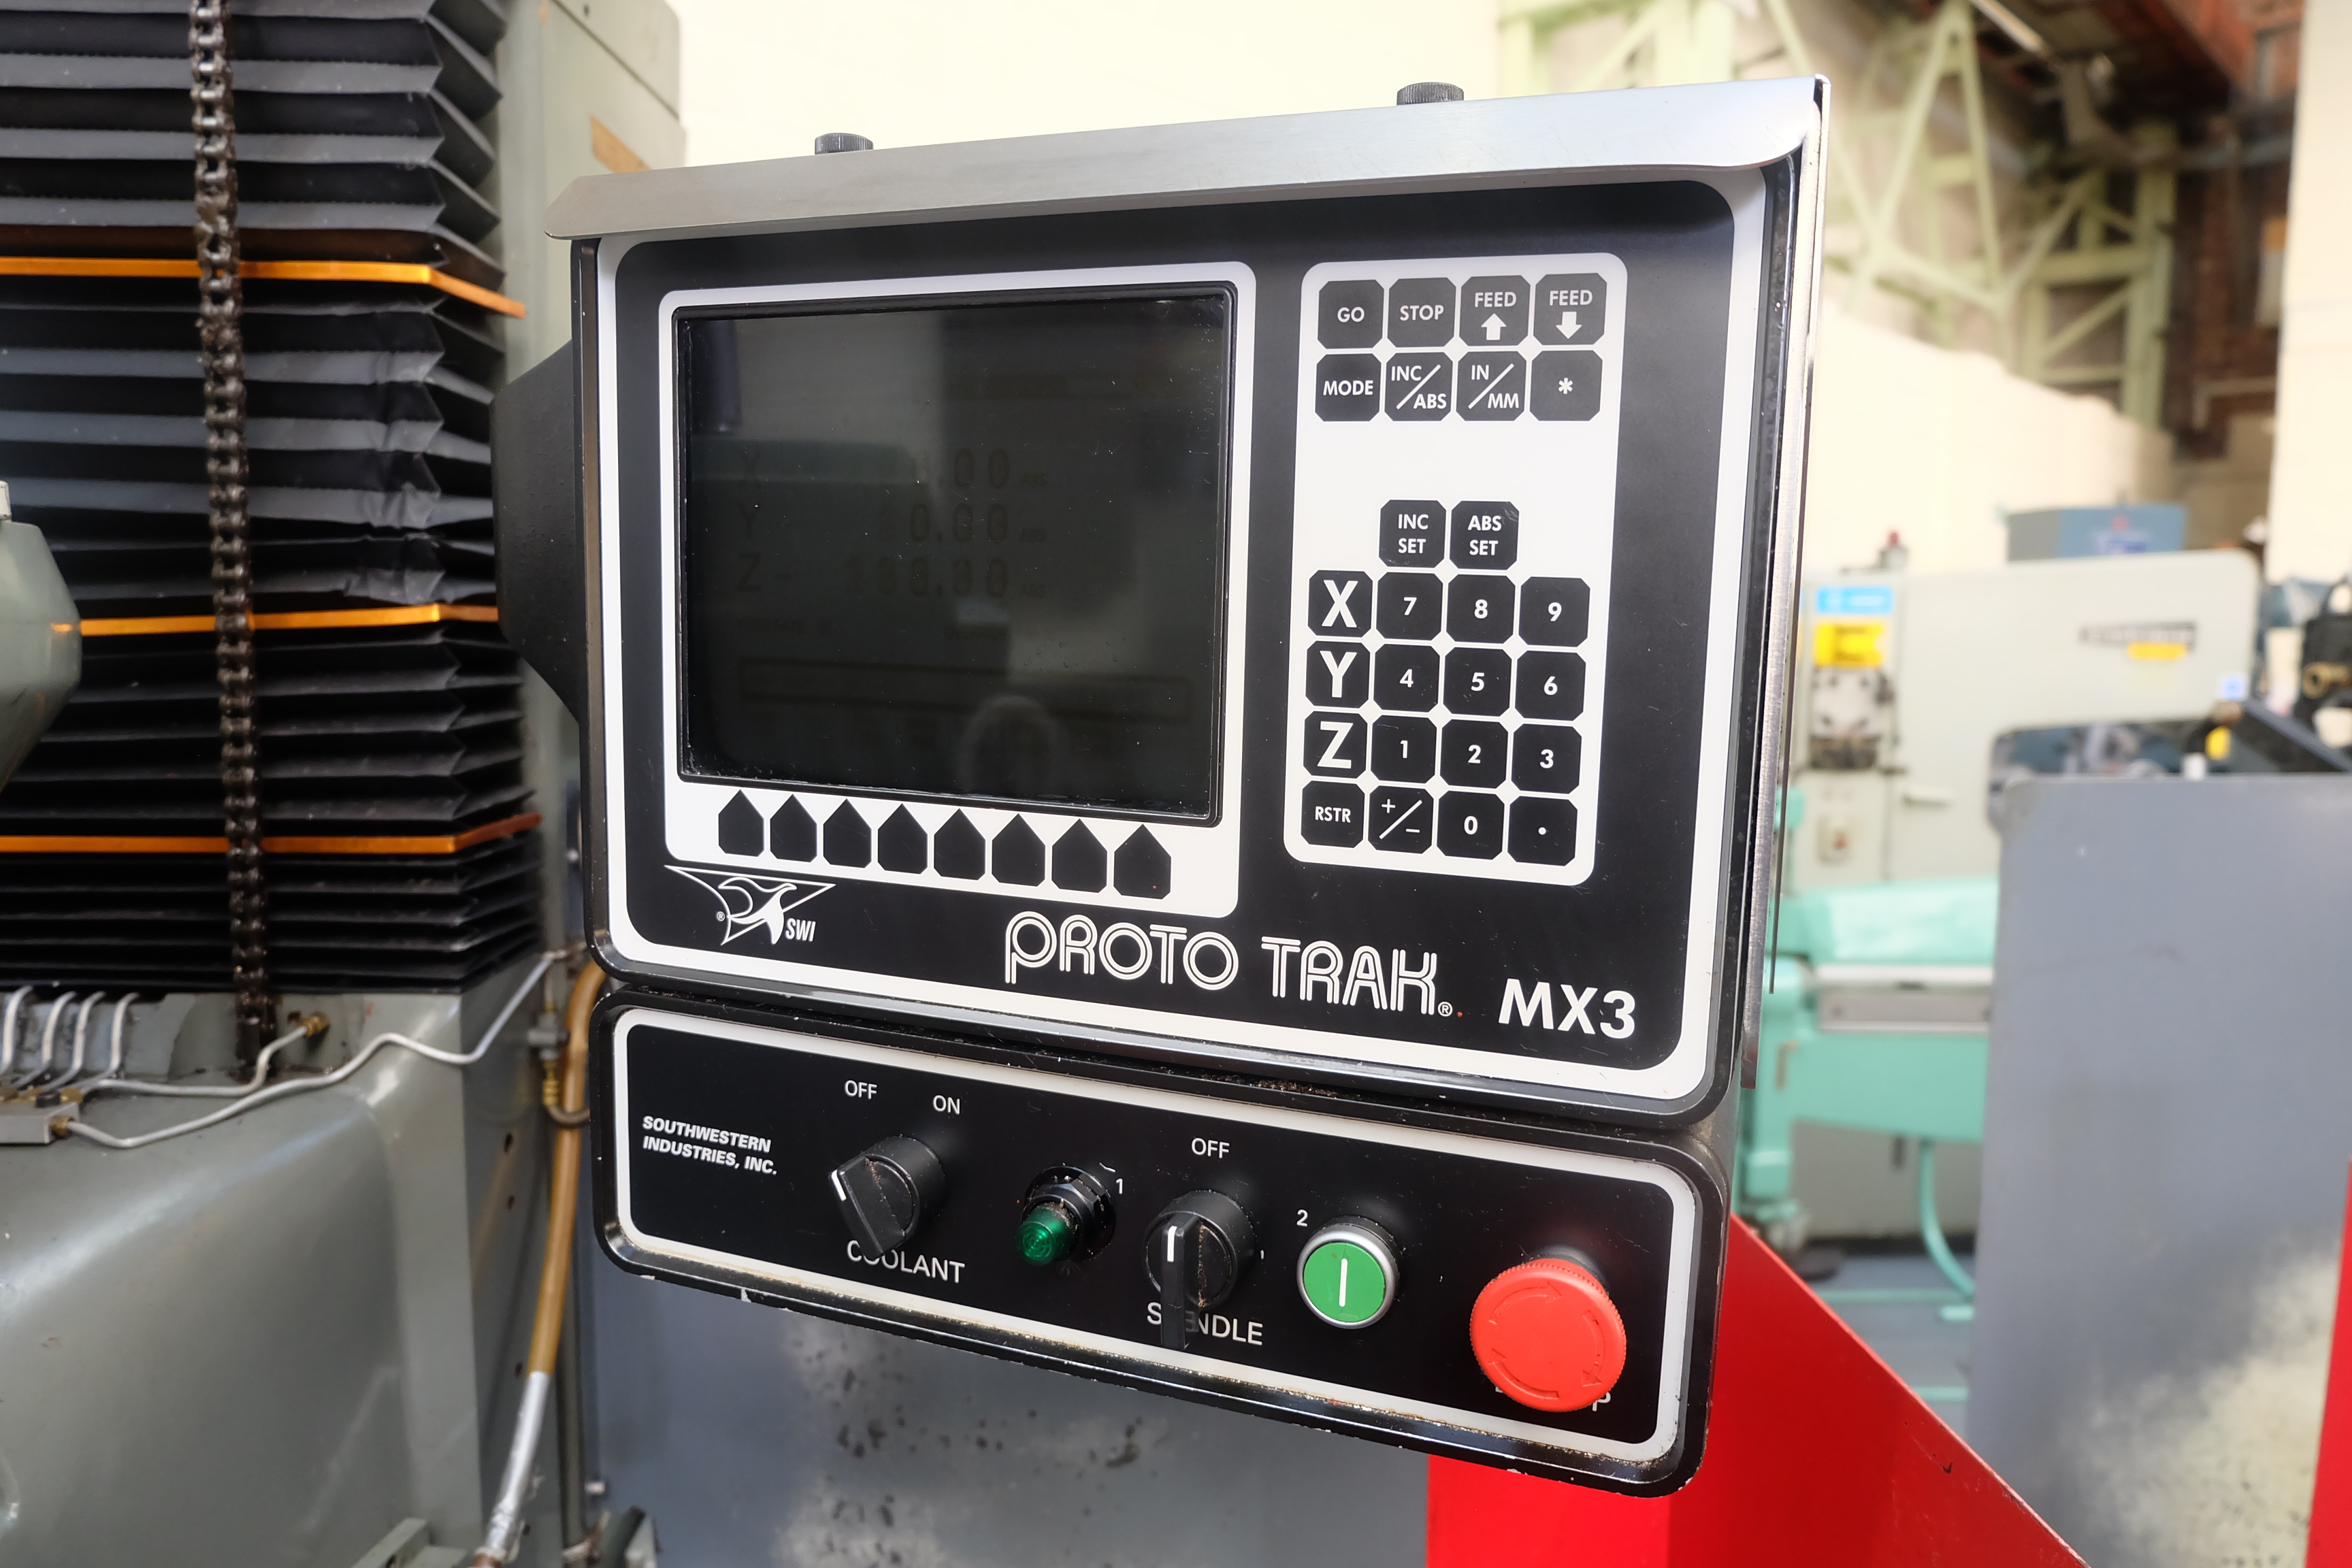 "2 x XYZ Type DPM Milling Machines Table 42"" x 12 1/2"". Prototrak MX3 Control. For Spares or Repair. - Image 6 of 21"